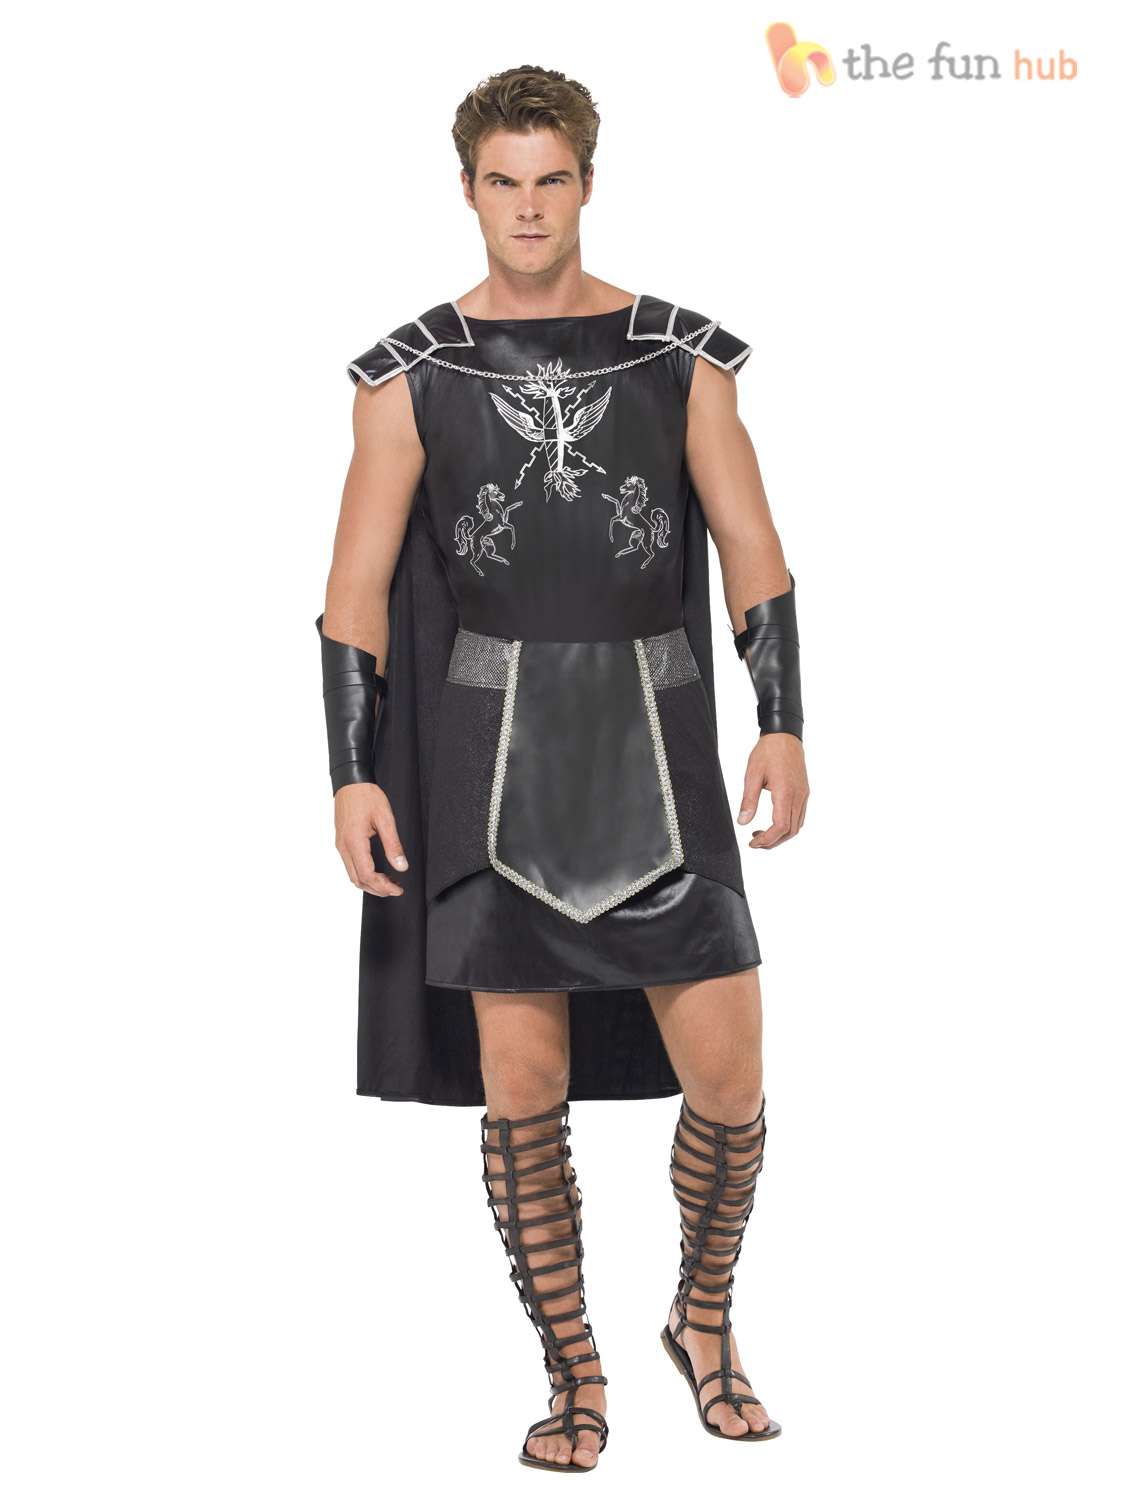 Adult-Dark-Gladiator-Costume-Mens-Spartan-Warrior-Fancy-  sc 1 st  eBay & Adult Dark Gladiator Costume Mens Spartan Warrior Fancy Dress Roman ...